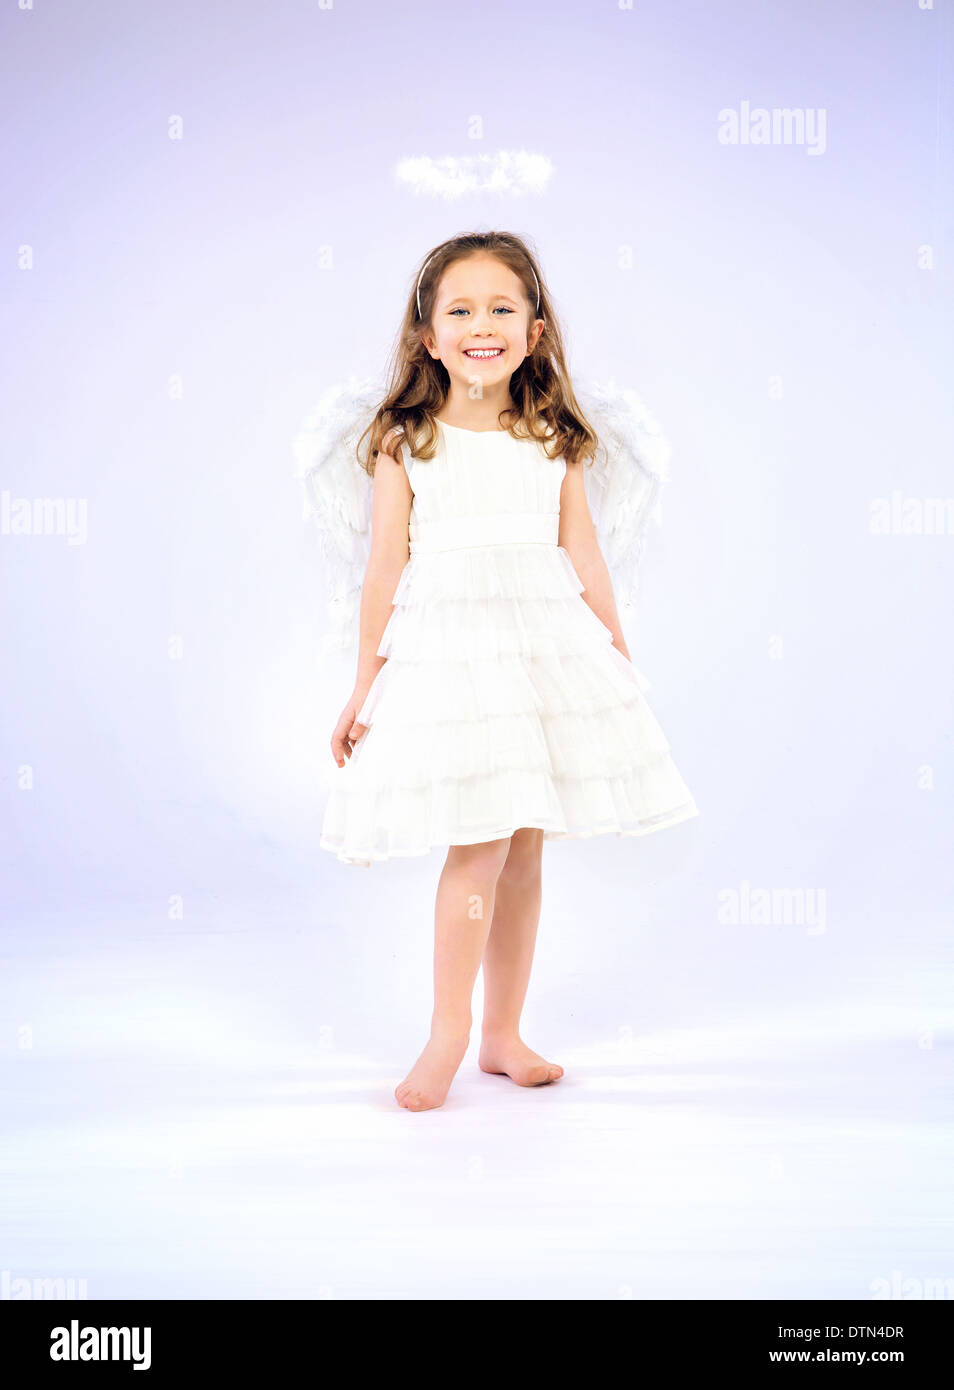 Joyful girl smiling and having fun - Stock Image